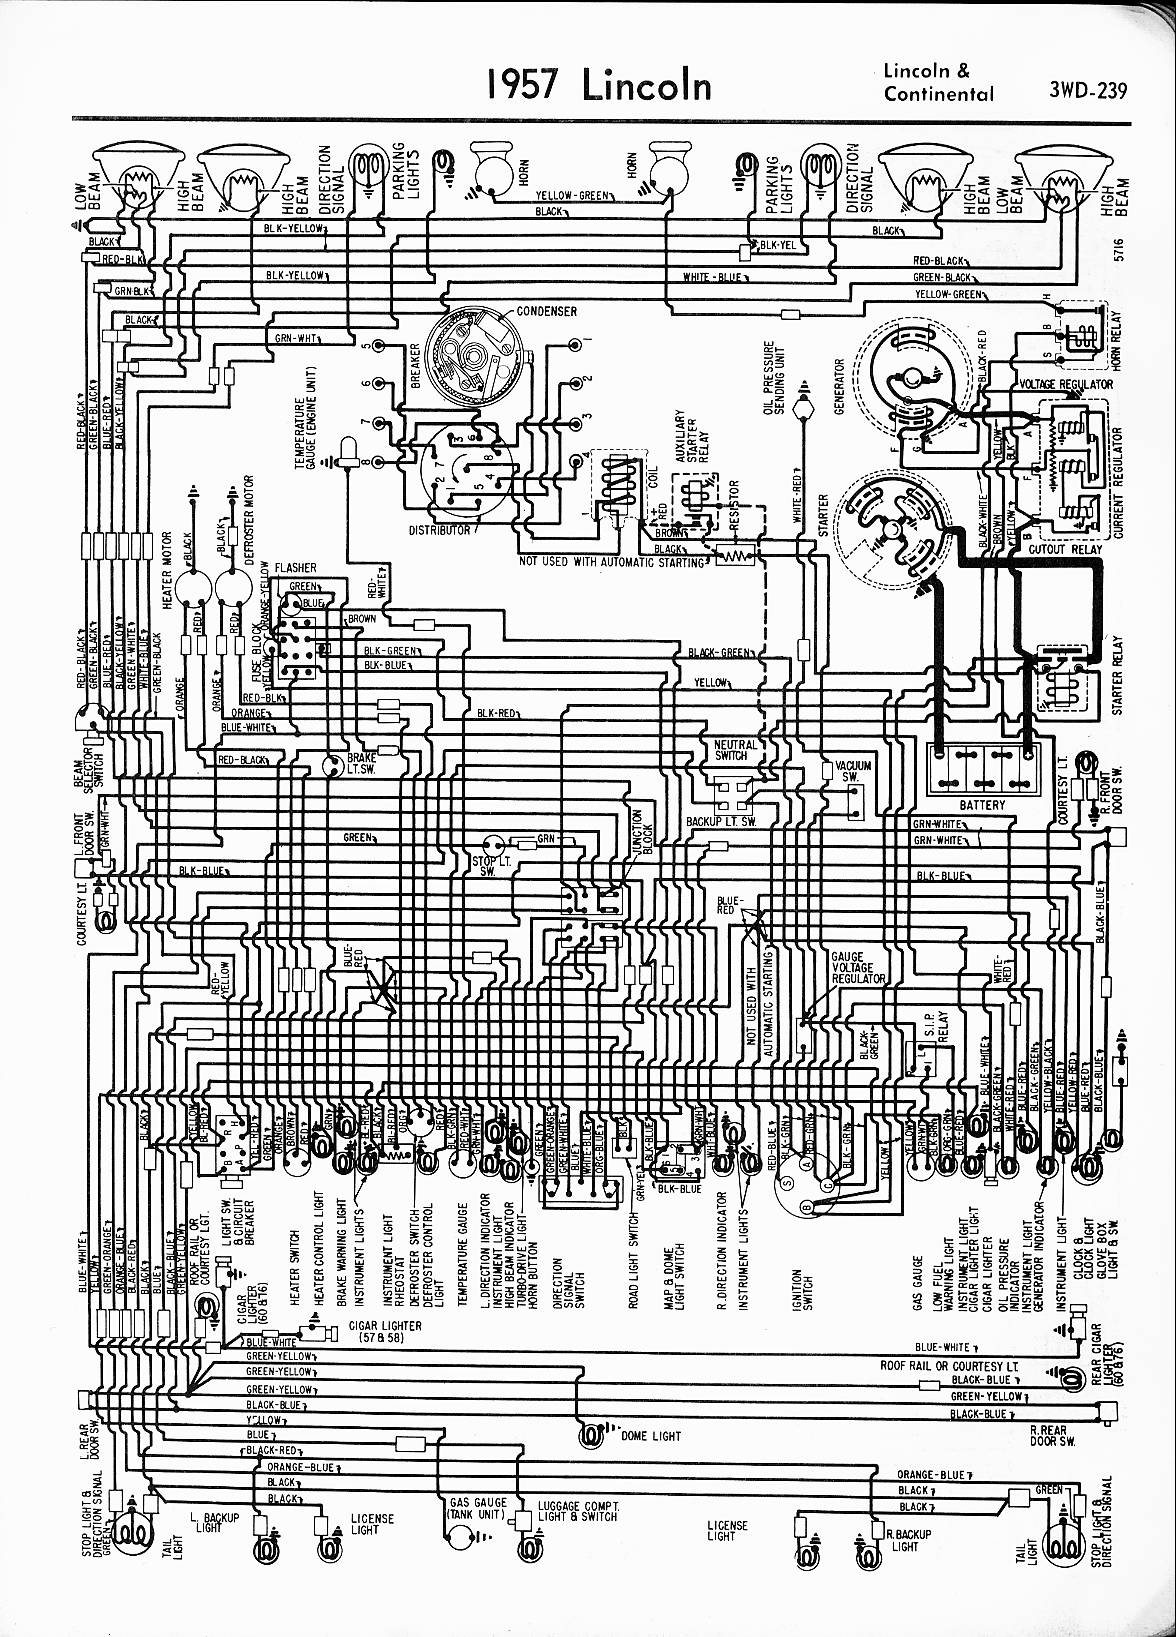 MWireLin_Lin57_z3wd 239z_001 lincoln wiring diagrams 1957 1965